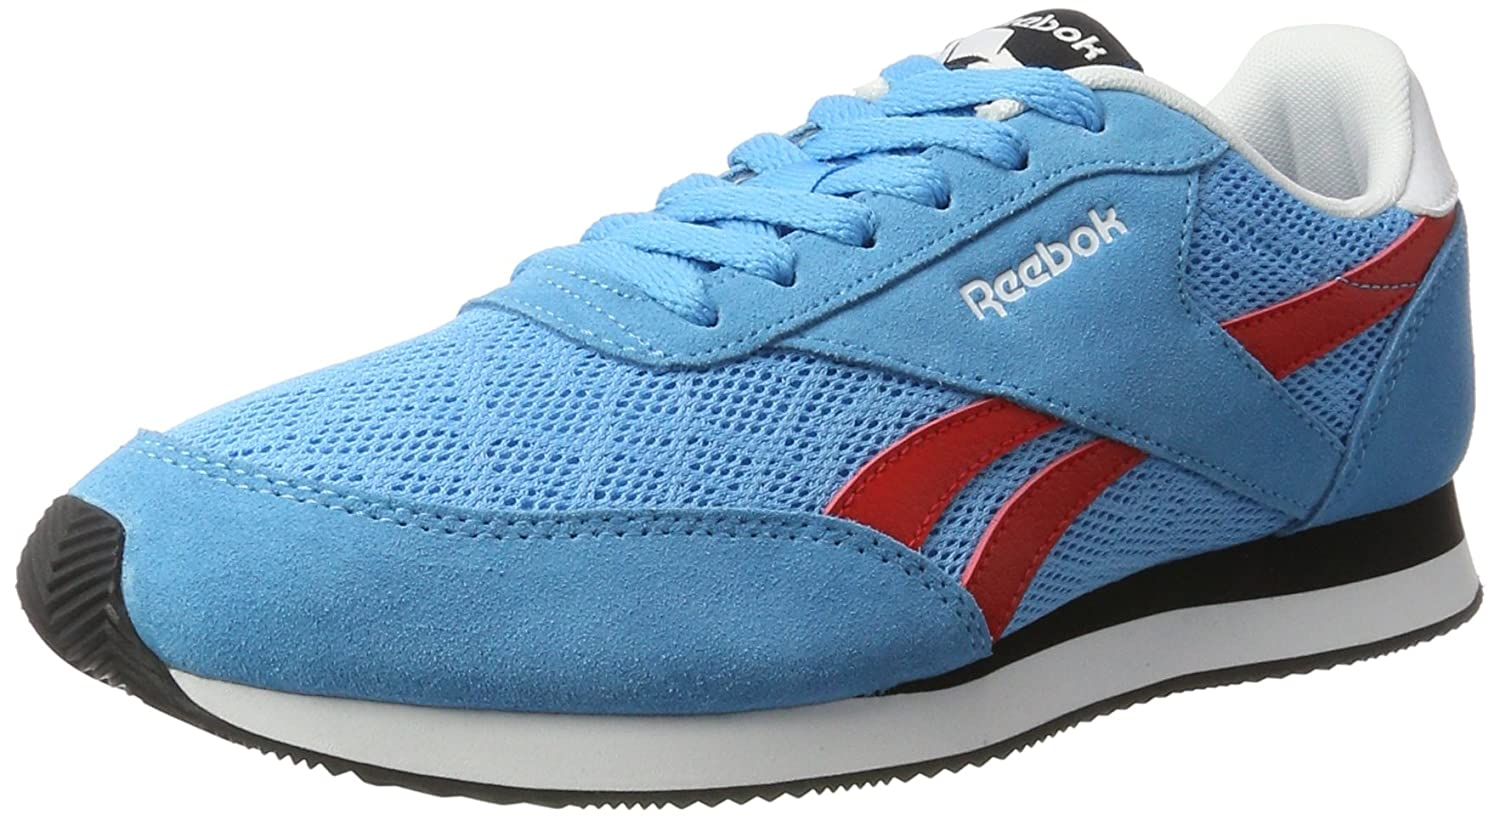 Reebok Herren Bd3418 Traillaufschuhe  40 EU|Blau (Blue Beam/Primal Red/Black/White)